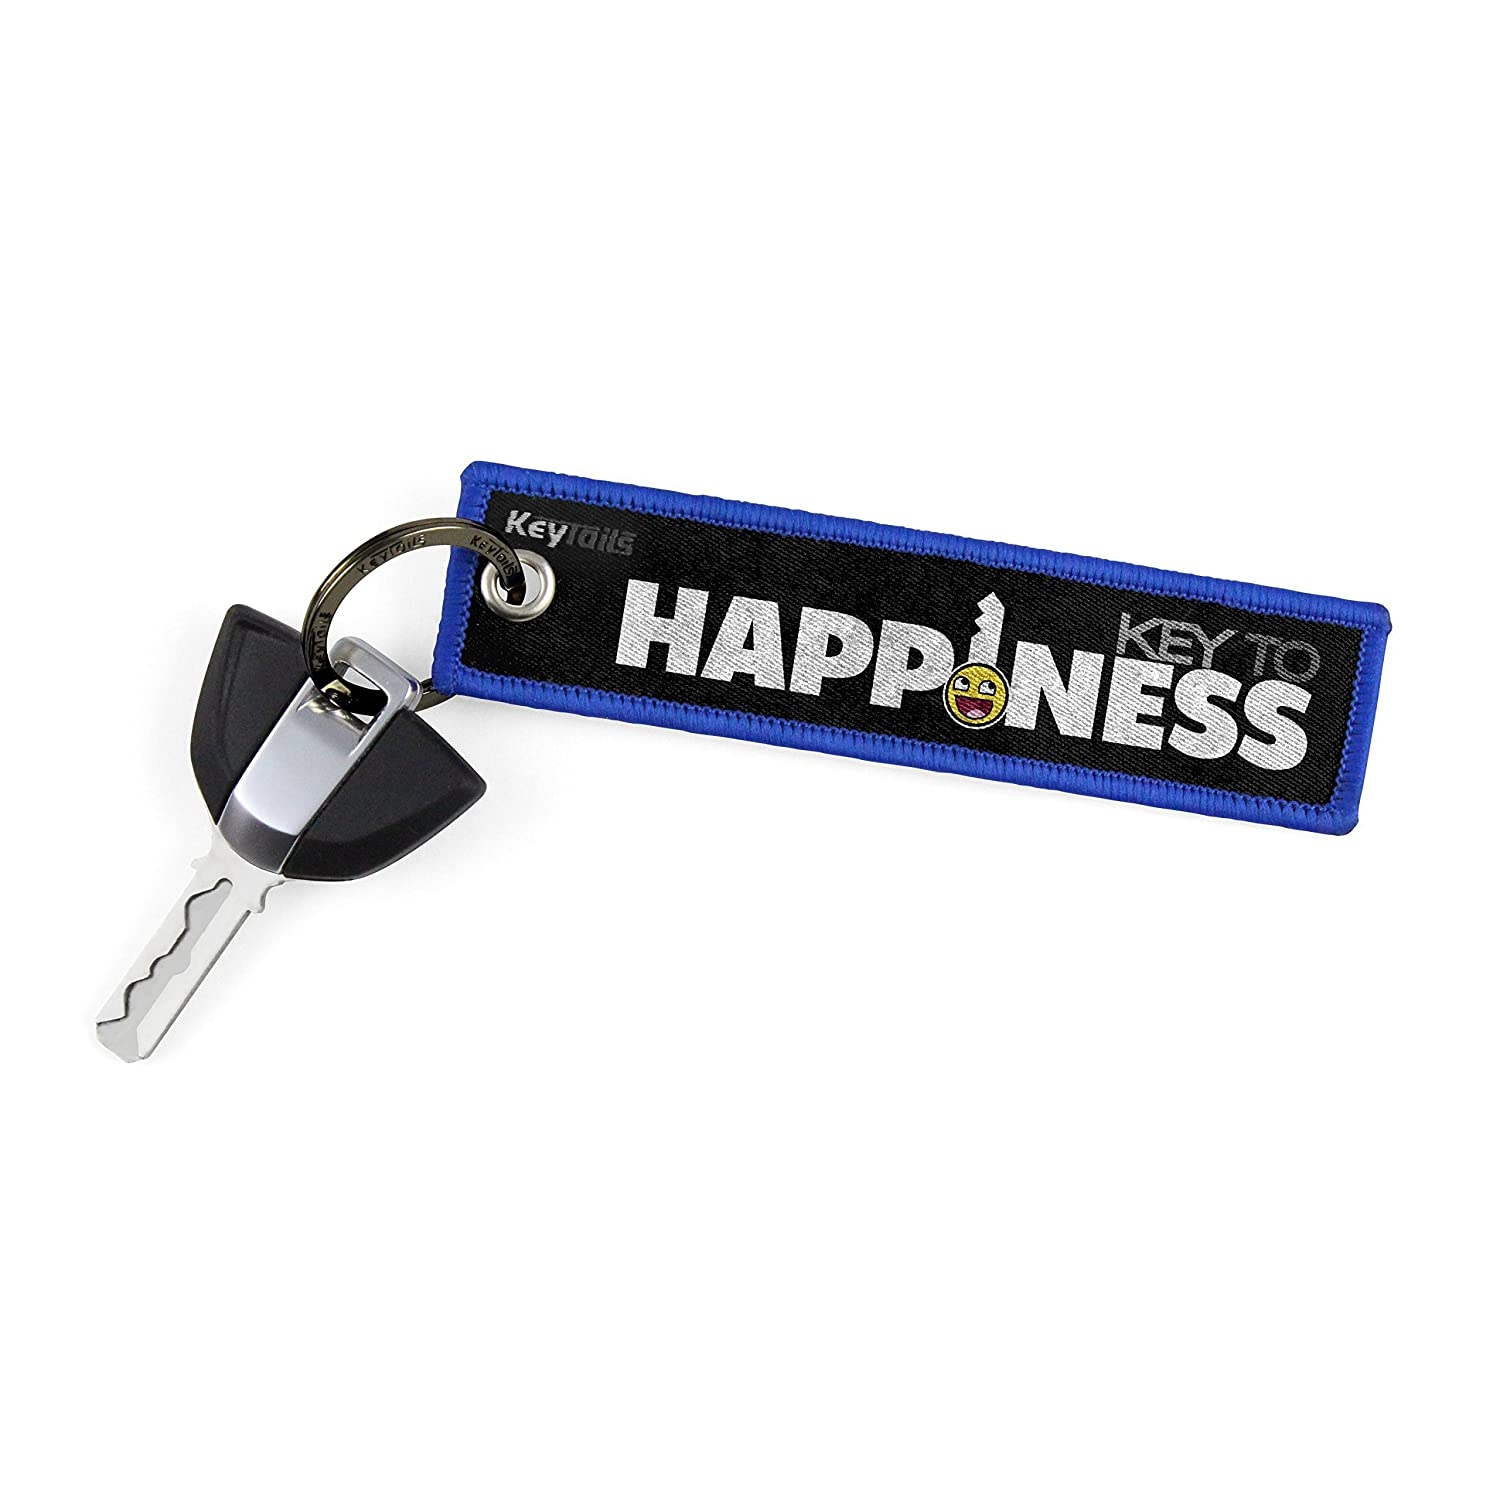 ATV KEYTAILS Keychains UTV Premium Quality Key Tag for Motorcycle Key to Happiness Scooter Car